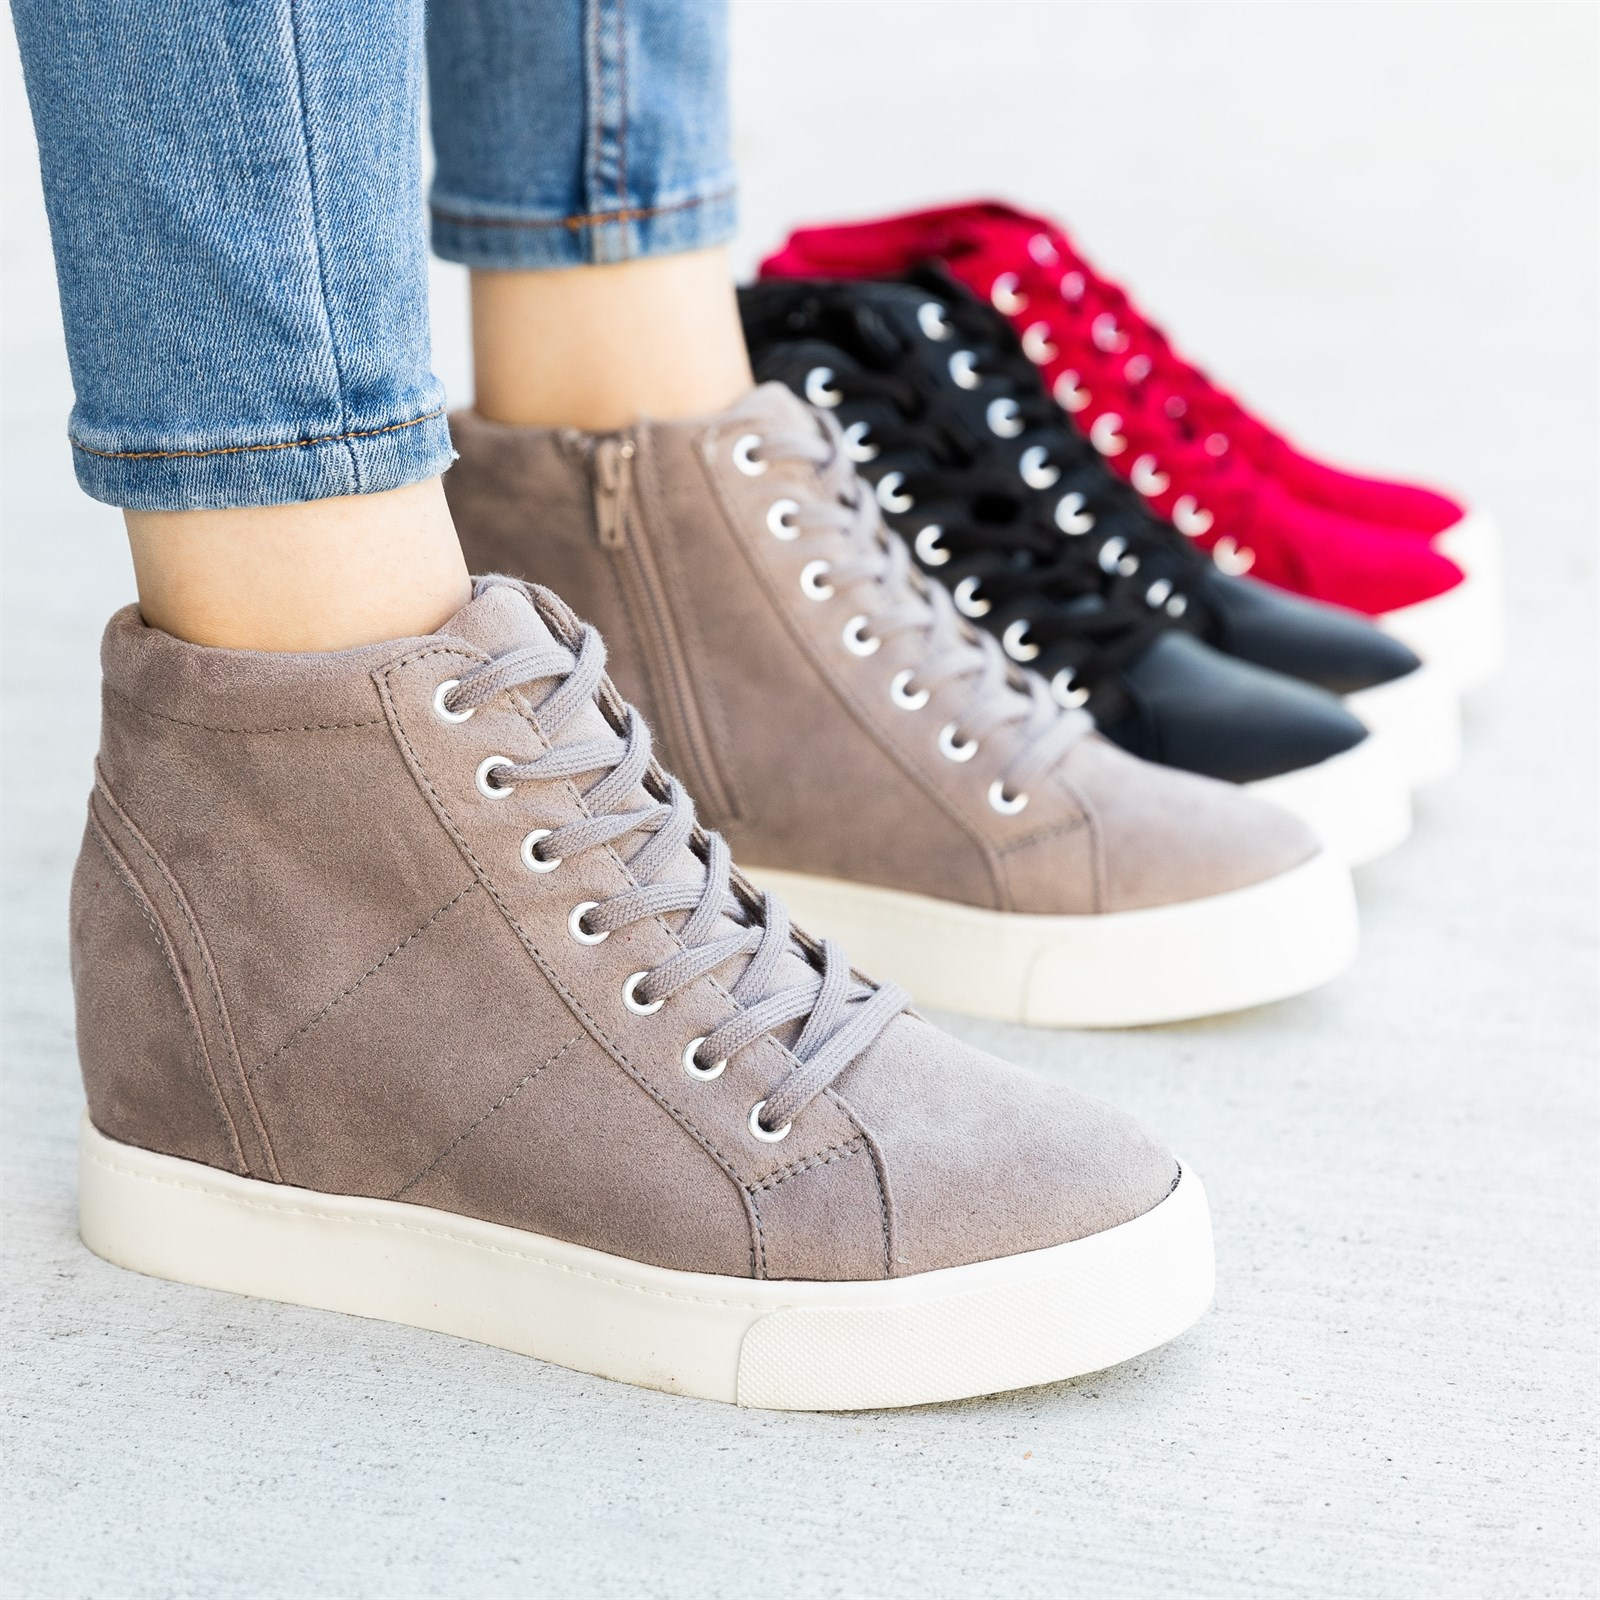 aliexpress sale usa online offer discounts Trendy Lace-Up Sneaker Wedges